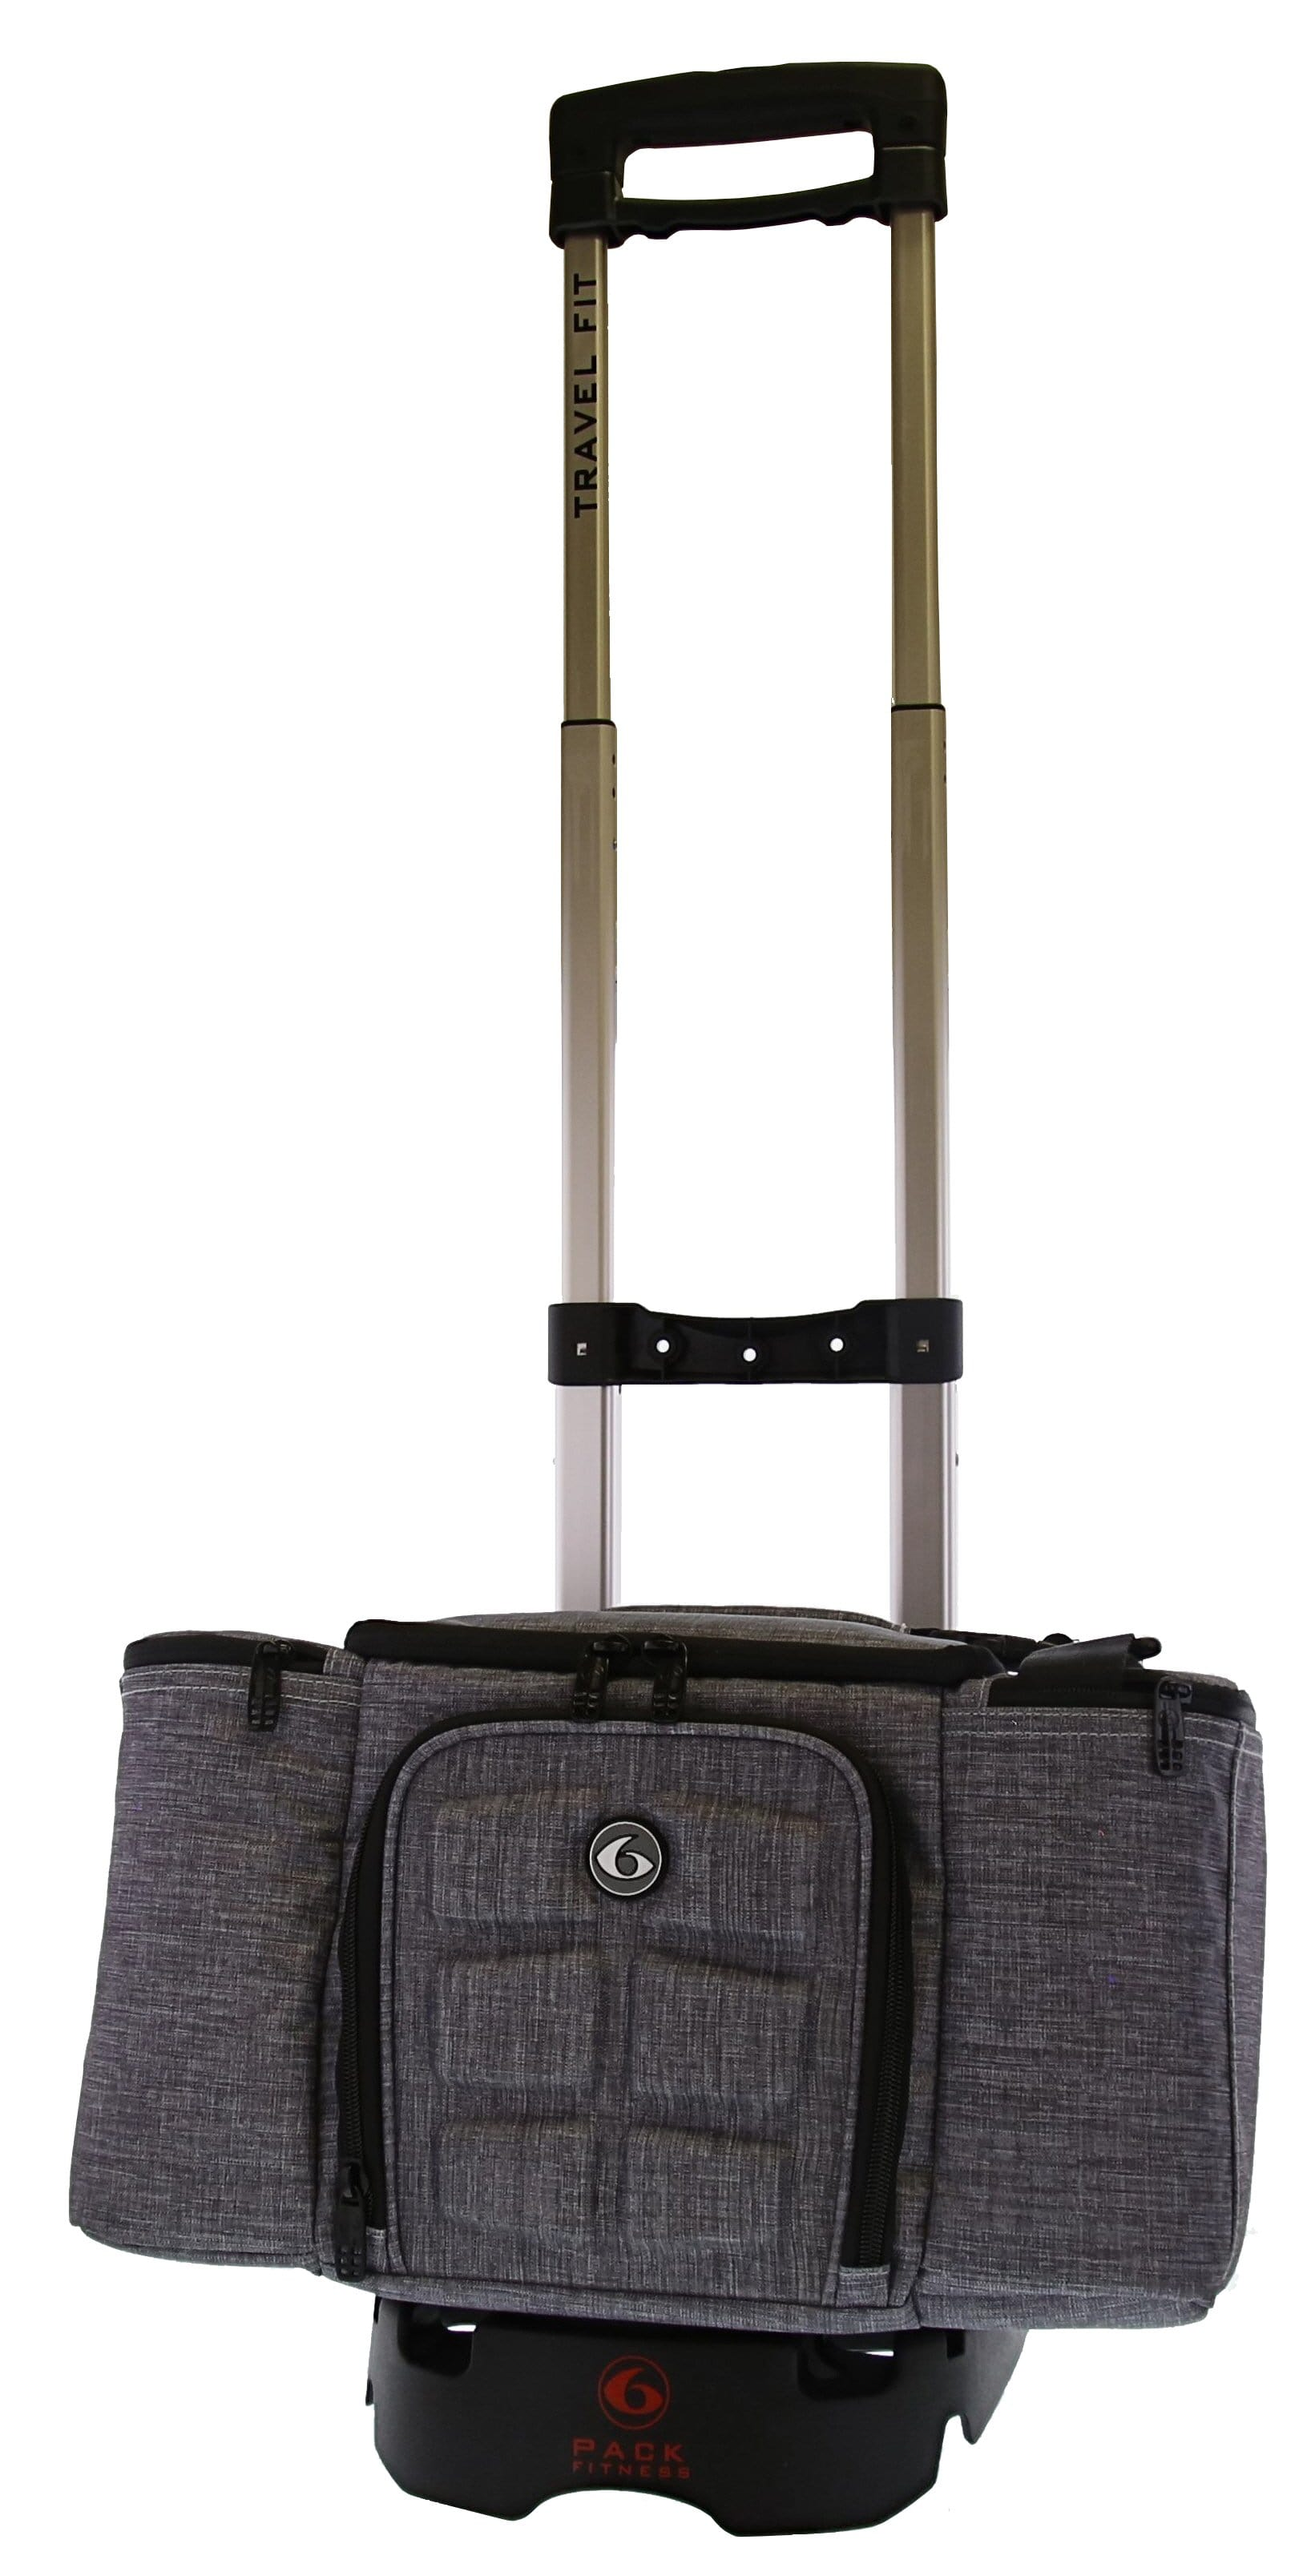 Trolley Bag & Luggage System